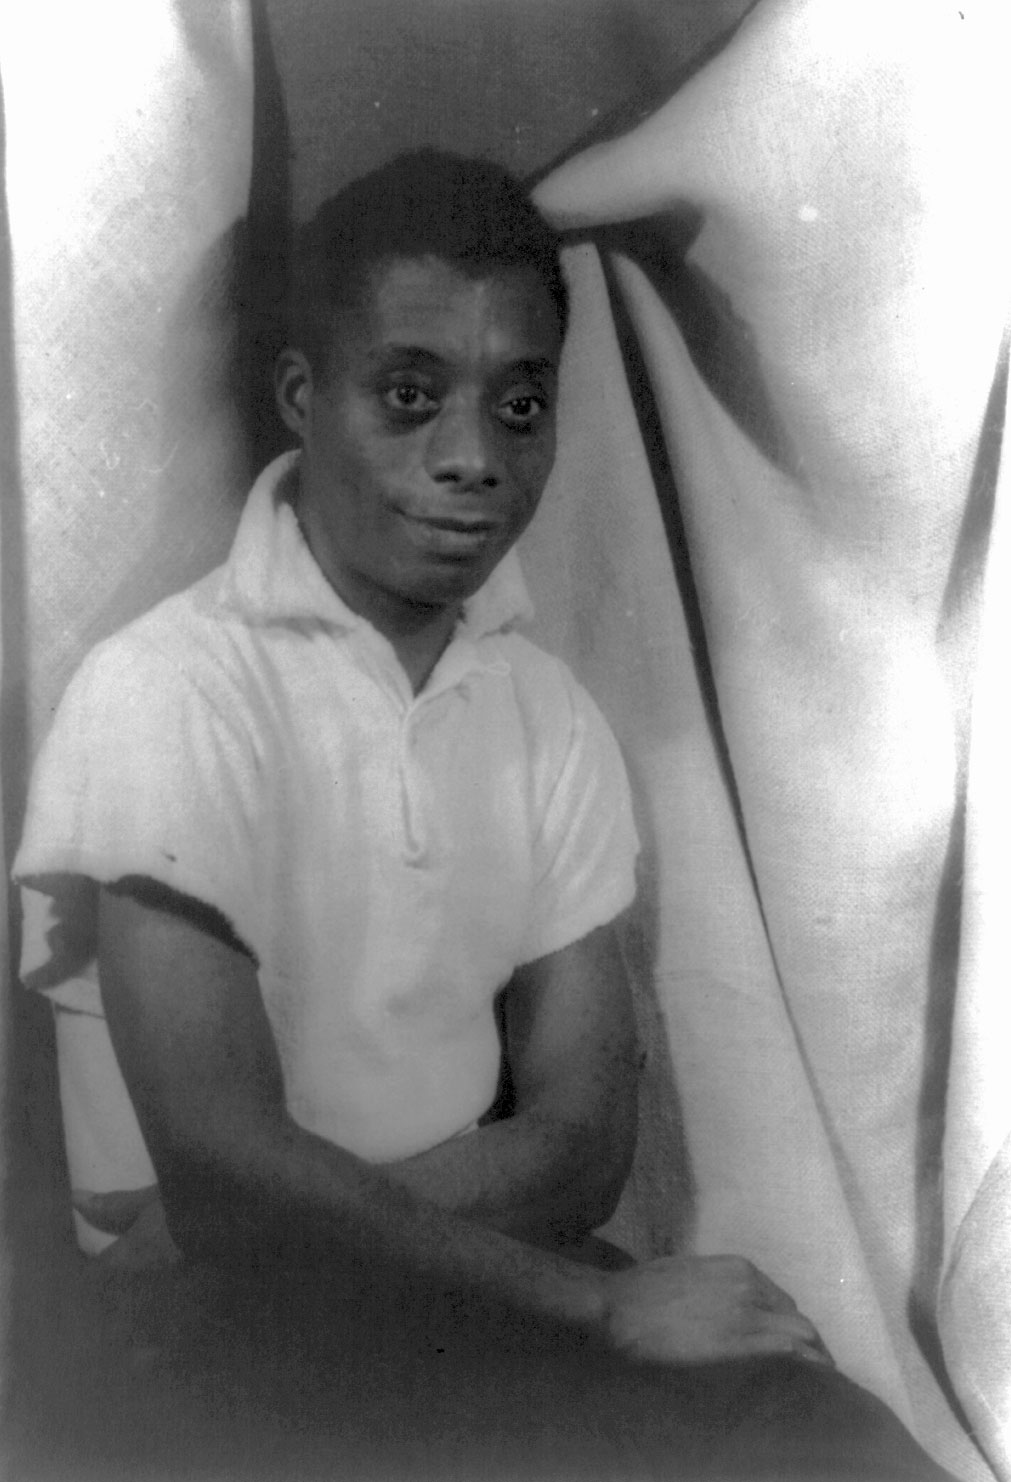 james baldwin rockpile essay jessica ruelle The rockpile- james baldwin the rockpile takes place in a small part of town where essay baldwin rockpile james  the rockpile, essay by jessica ruelle in.